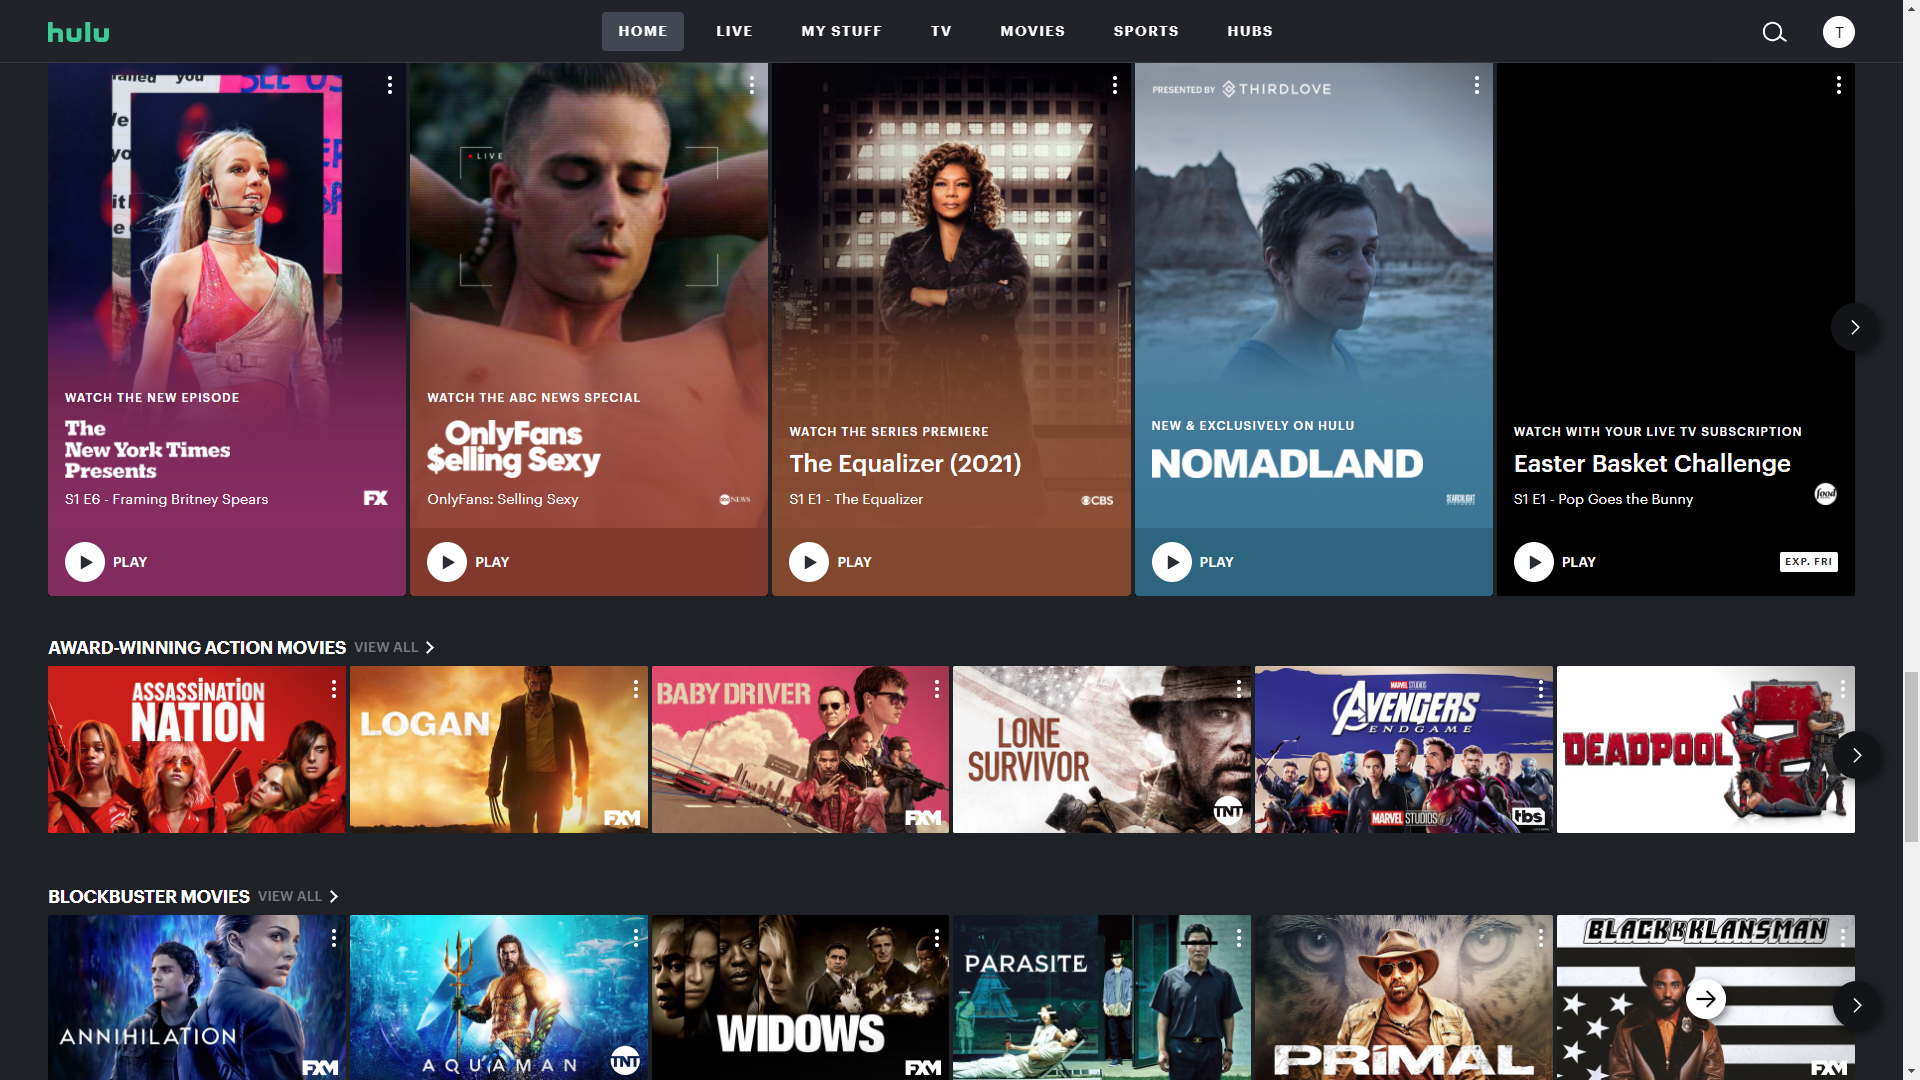 Hulu Plus Live TV review: Excellent catalog, channels for the price, limited cloud DVR